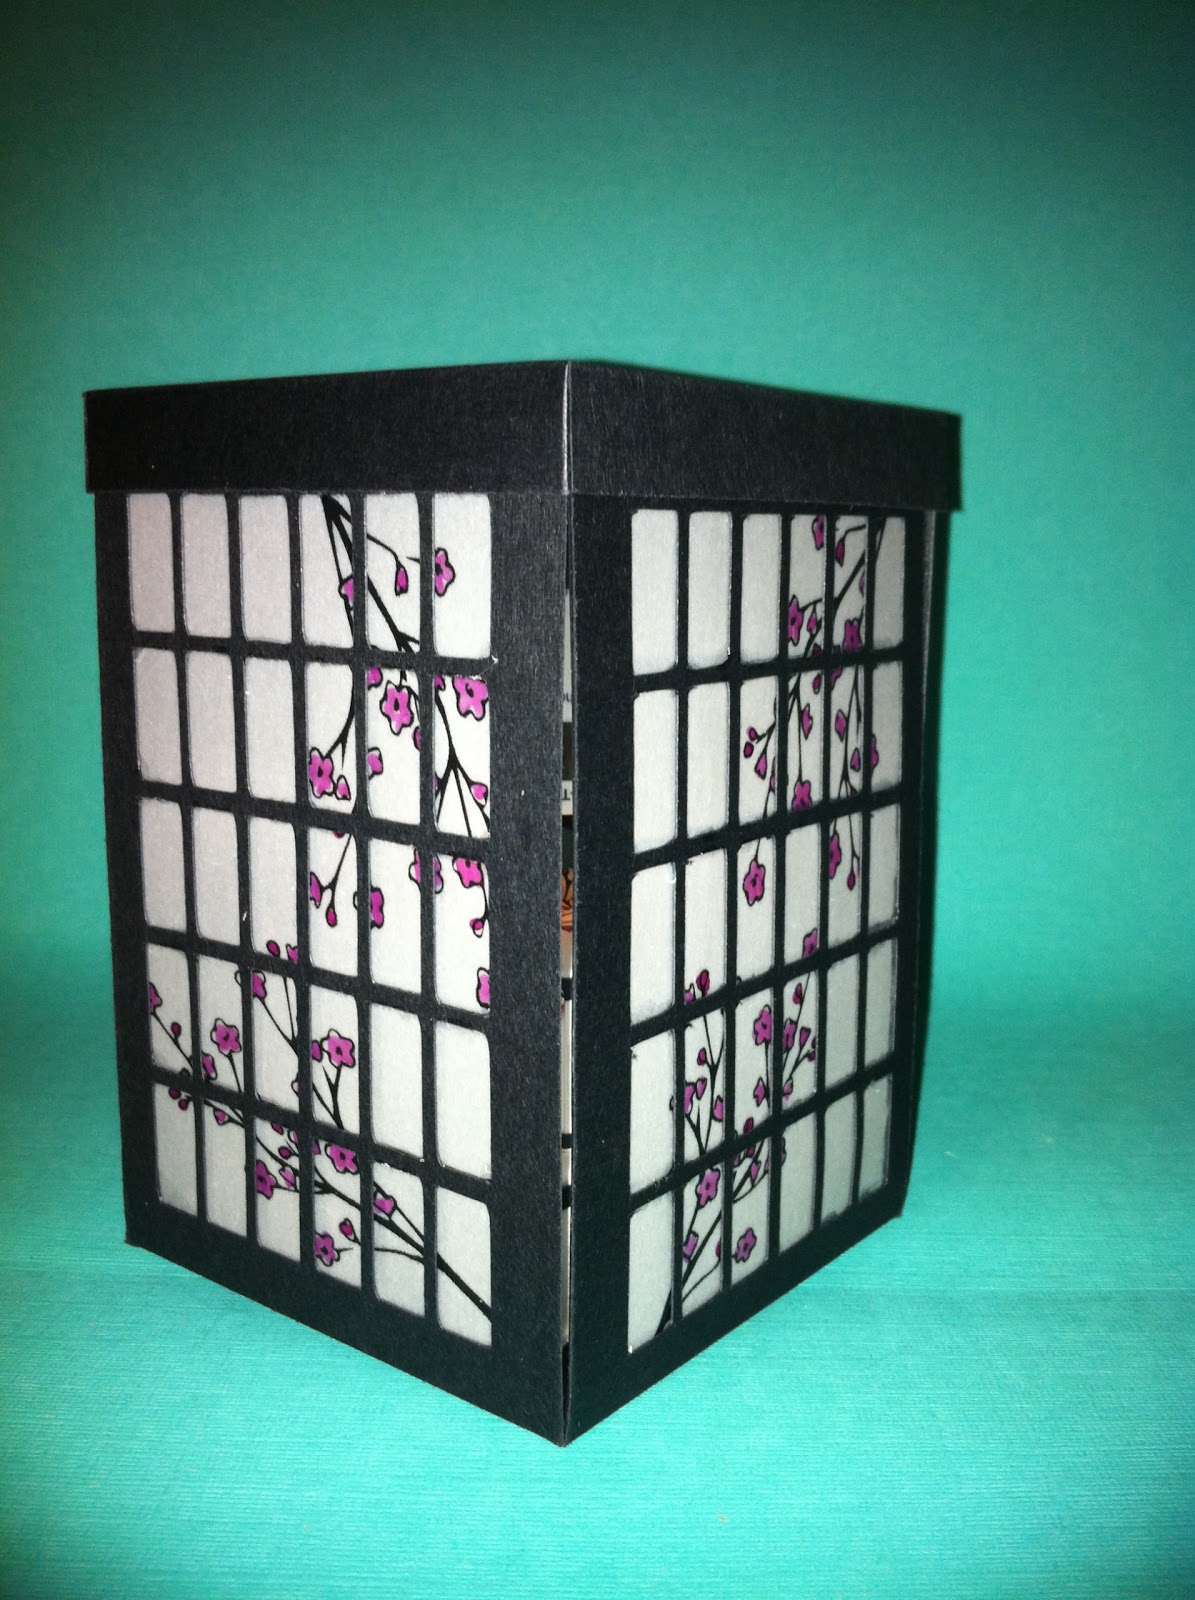 shoji screen paper We show you how to make these japanese shoji rice paper screen doors using simple hand tools http://nutsandboltsdiycom/how-to-make-japanese-rice-paper.